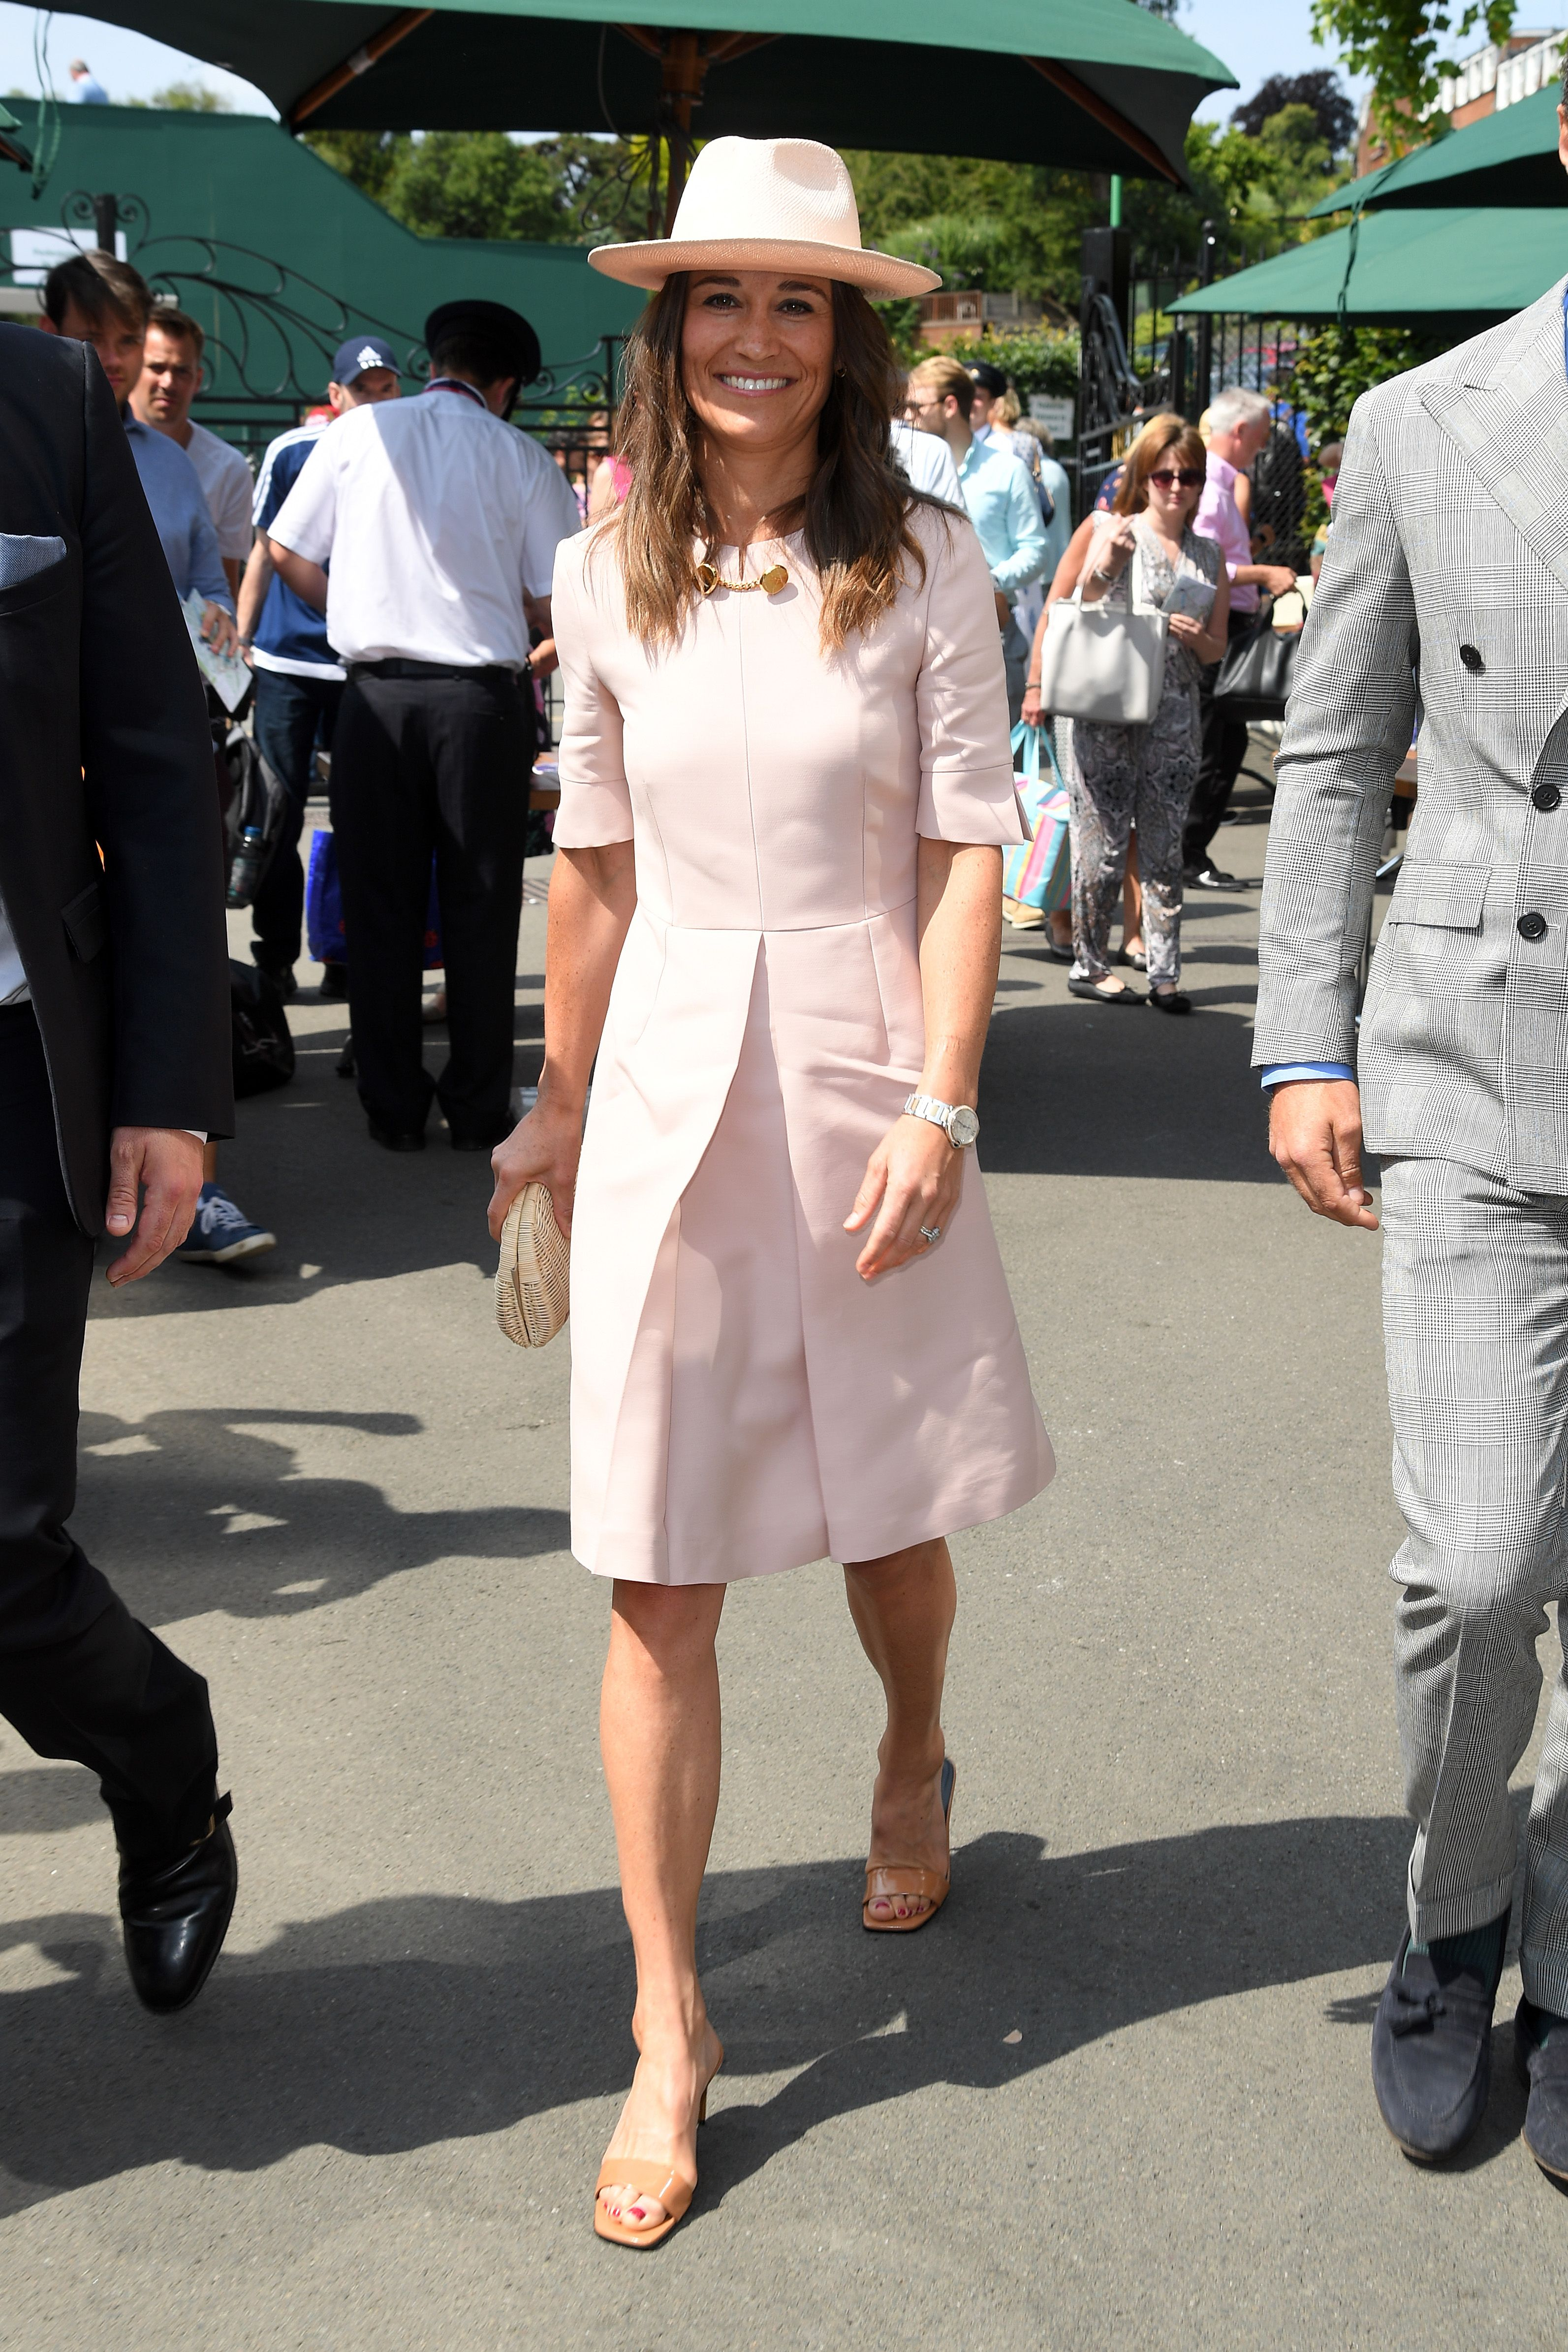 To Pippa Wimbledon Wears All Outfit Pink Middleton 2YWEIHD9